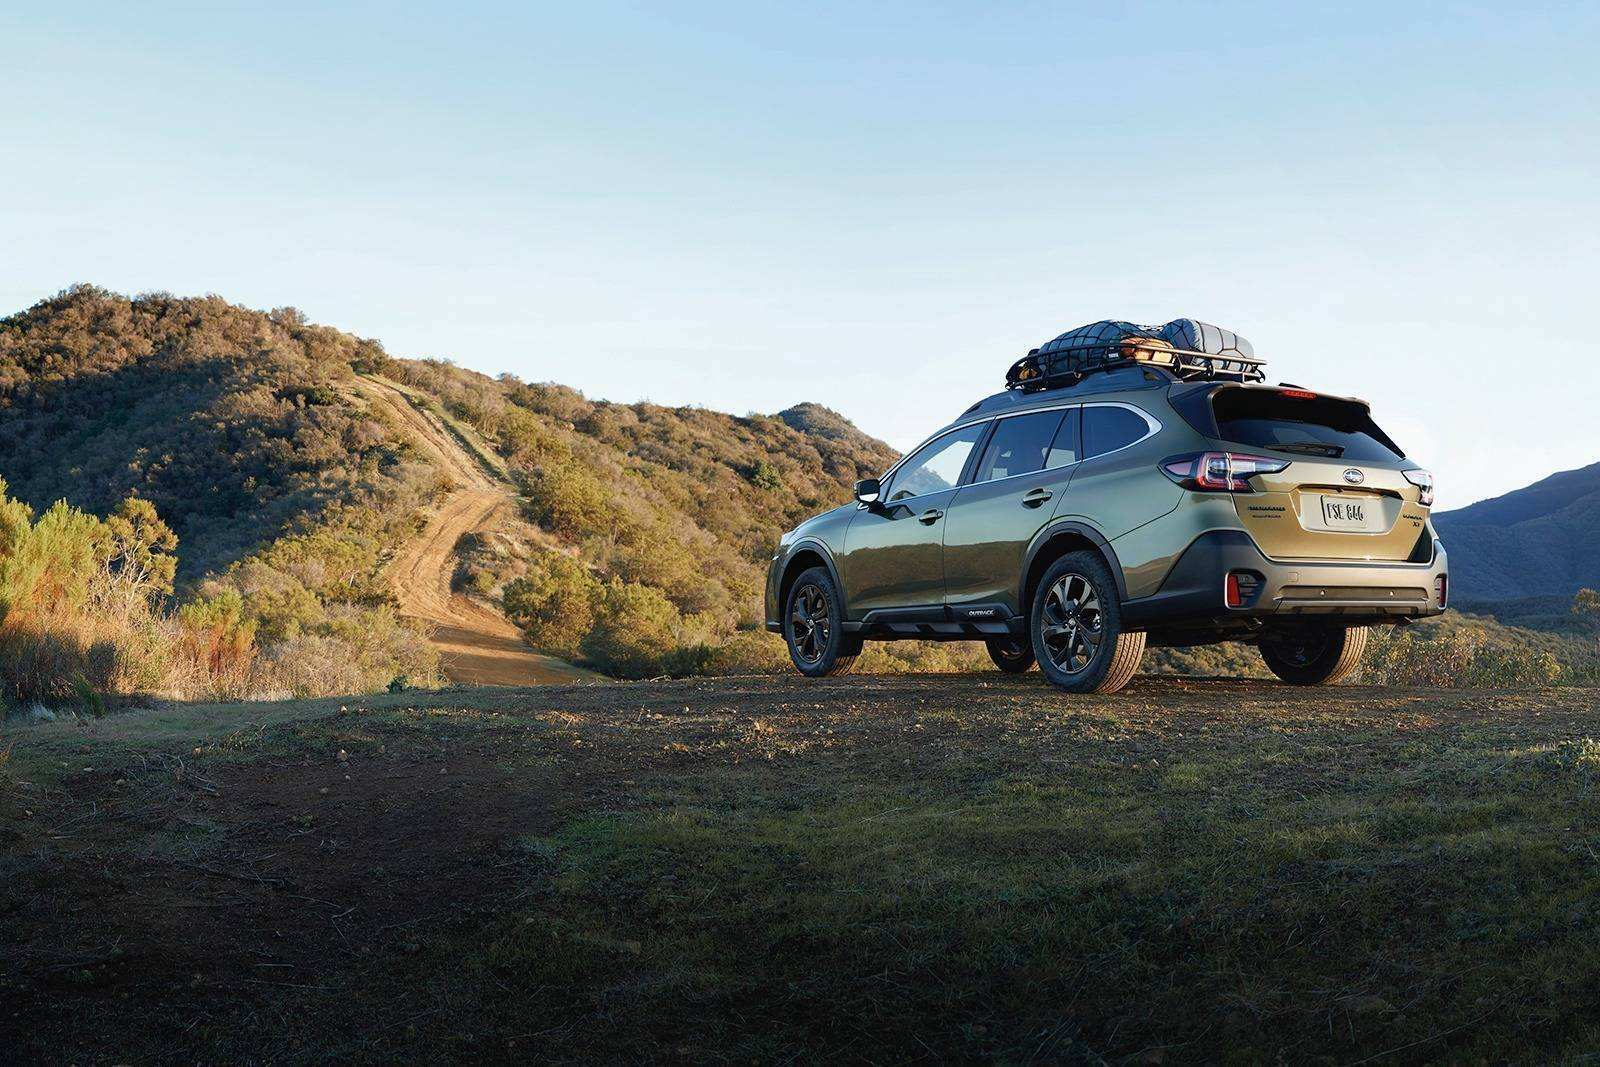 99 Best Review When Will 2020 Subaru Outback Be Available Picture for When Will 2020 Subaru Outback Be Available